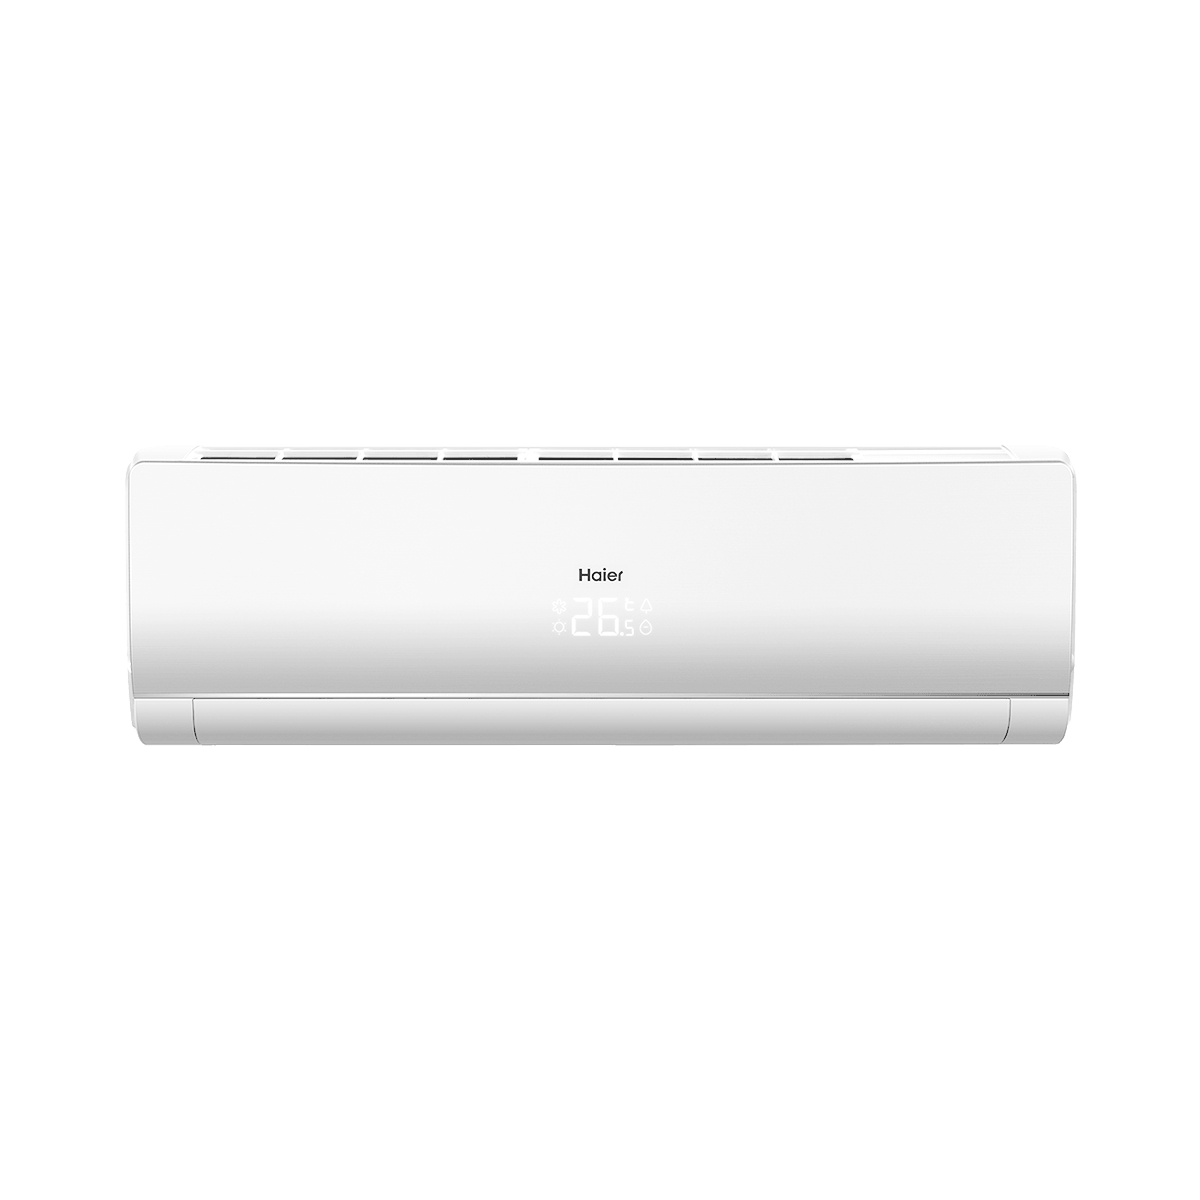 Сплит-система  Haier LIGHTERA DC-Inverter AS24NS3ERA-W / 1U24GS1ERA